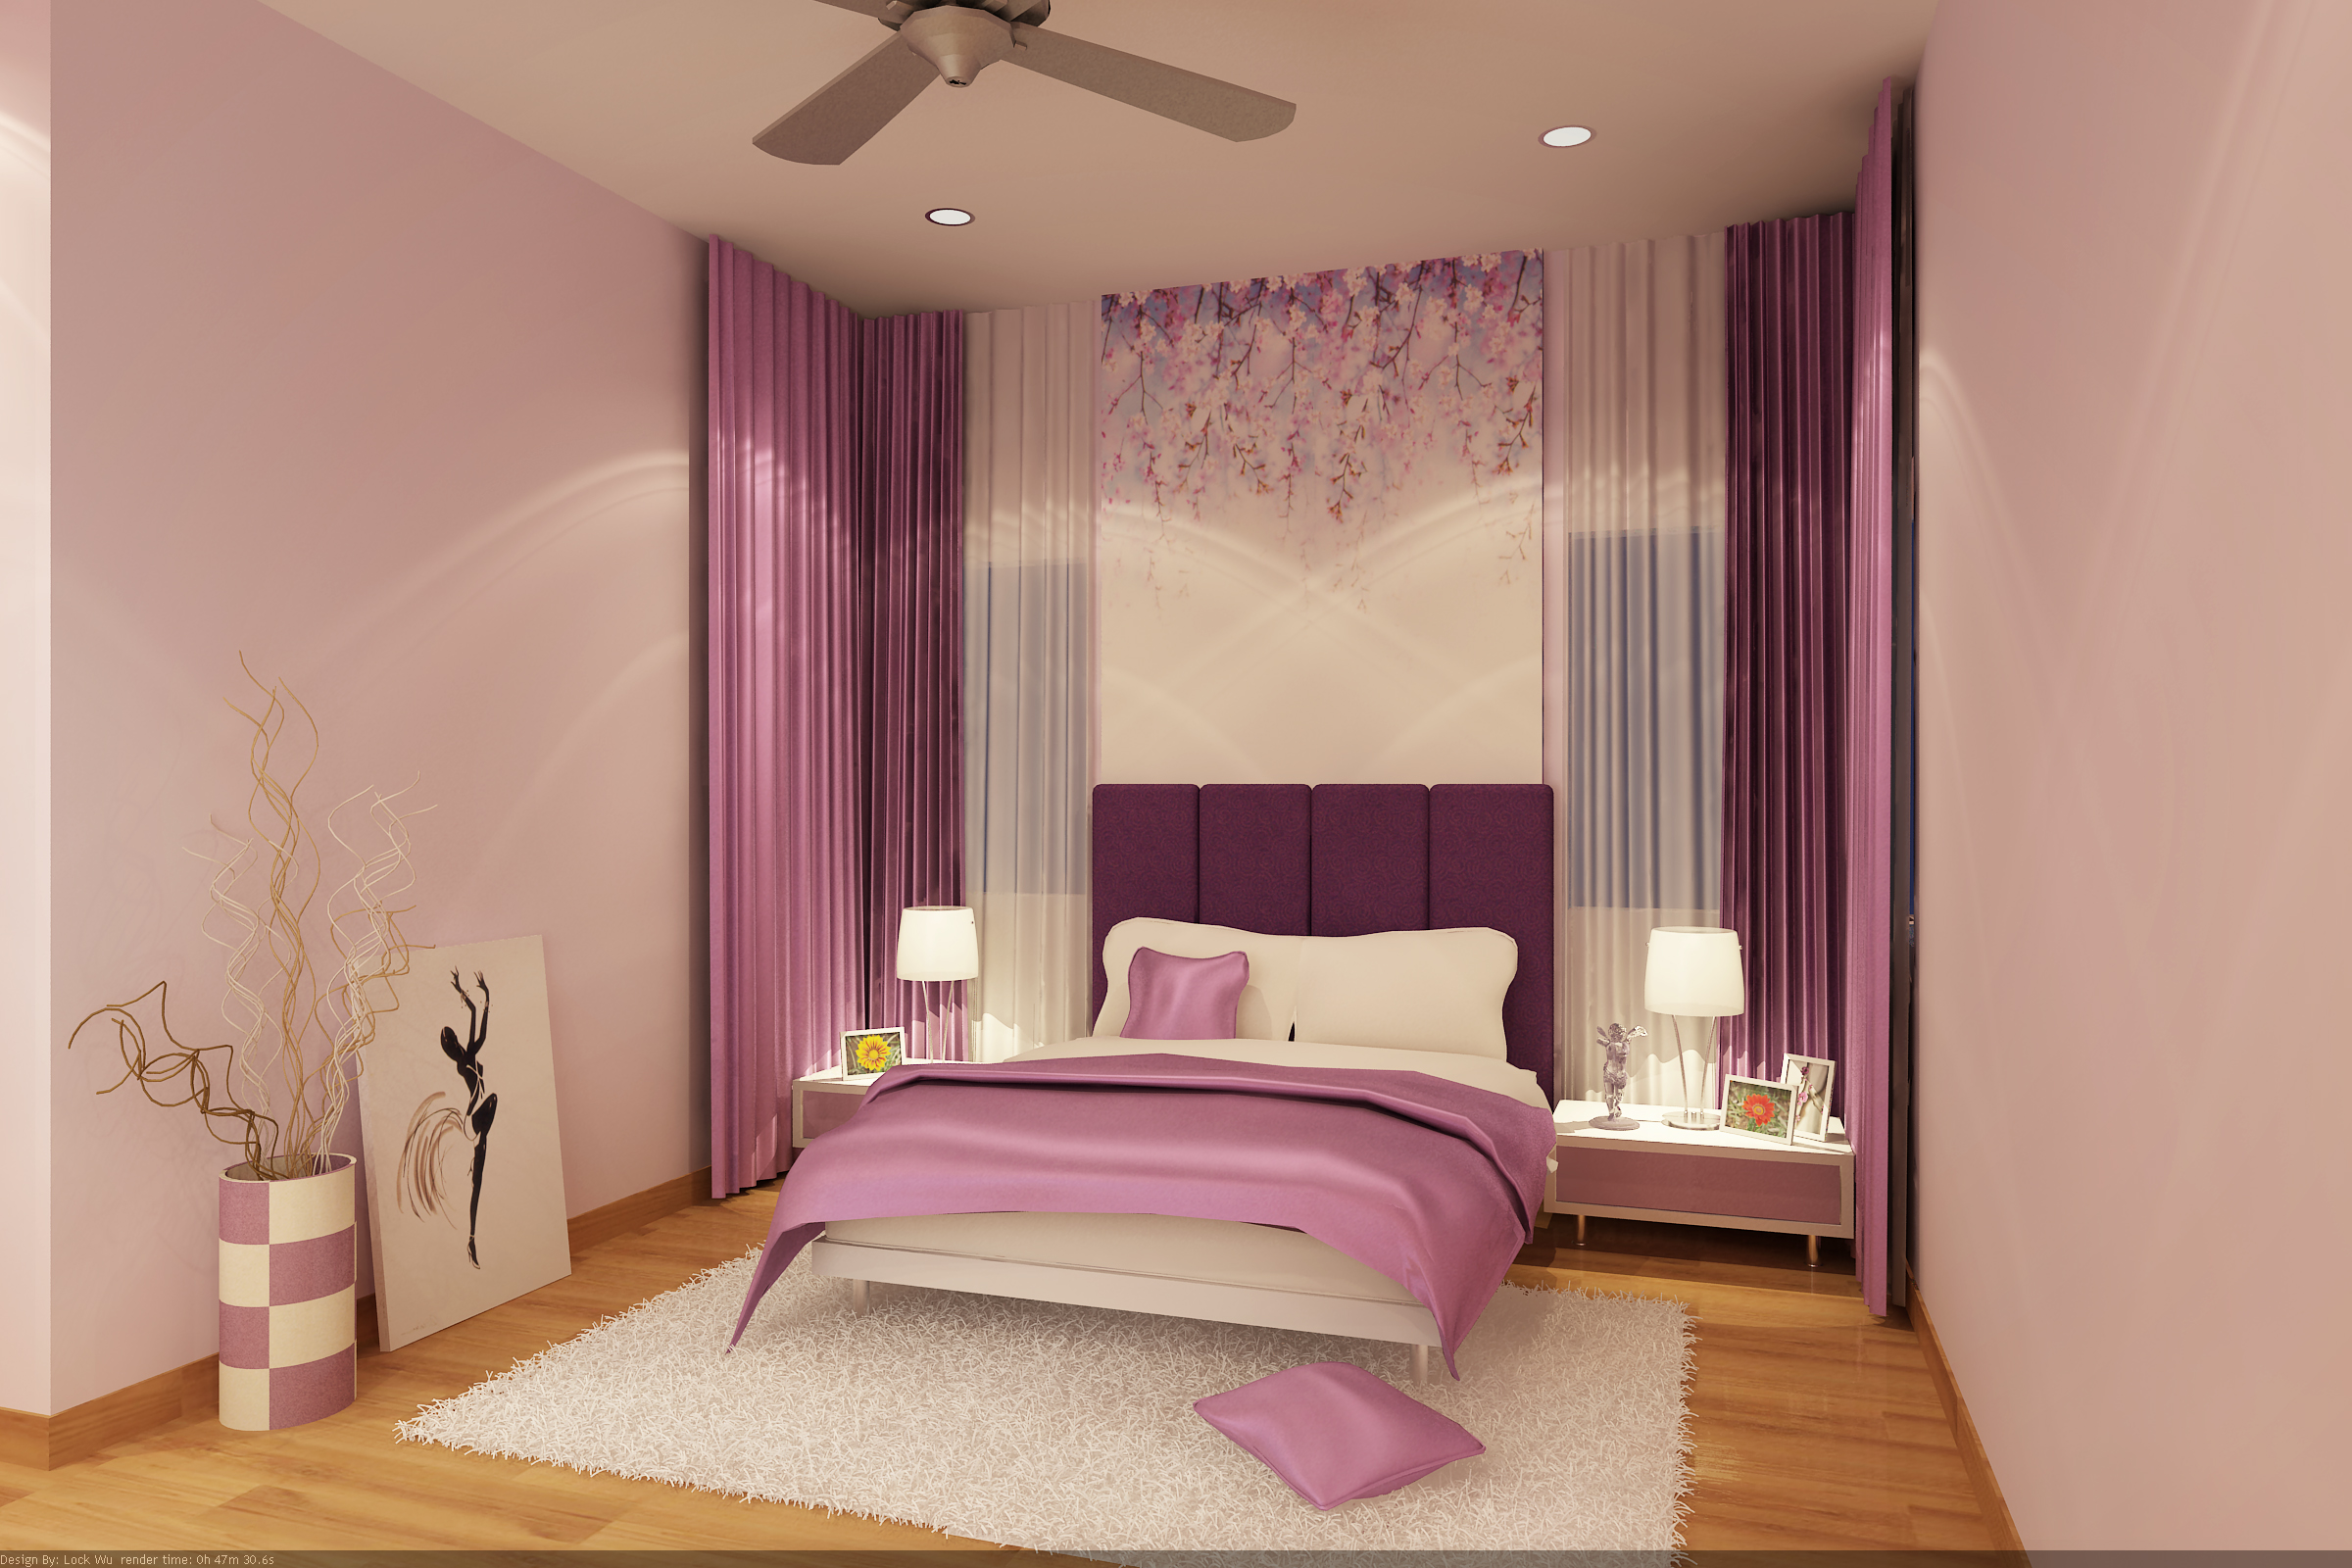 Residential projects by savita menon at for 3 year old bedroom ideas